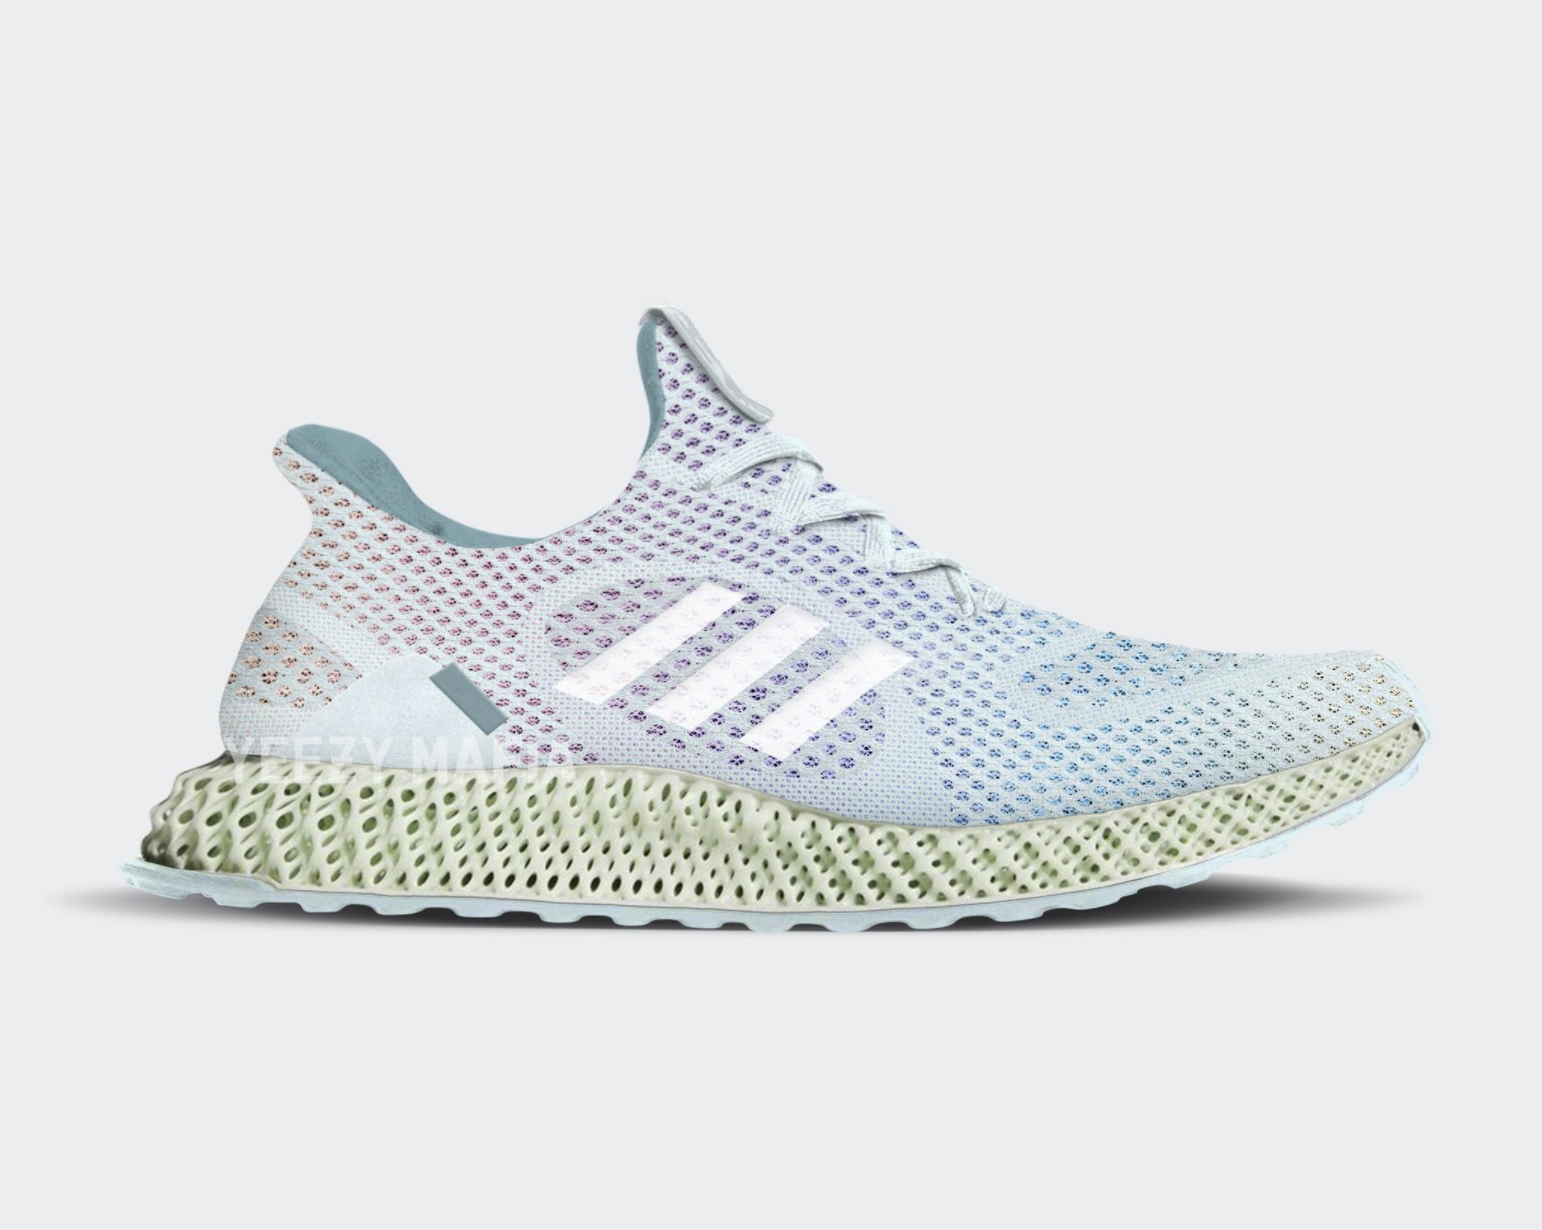 invincible adidas futurecraft 4D runner